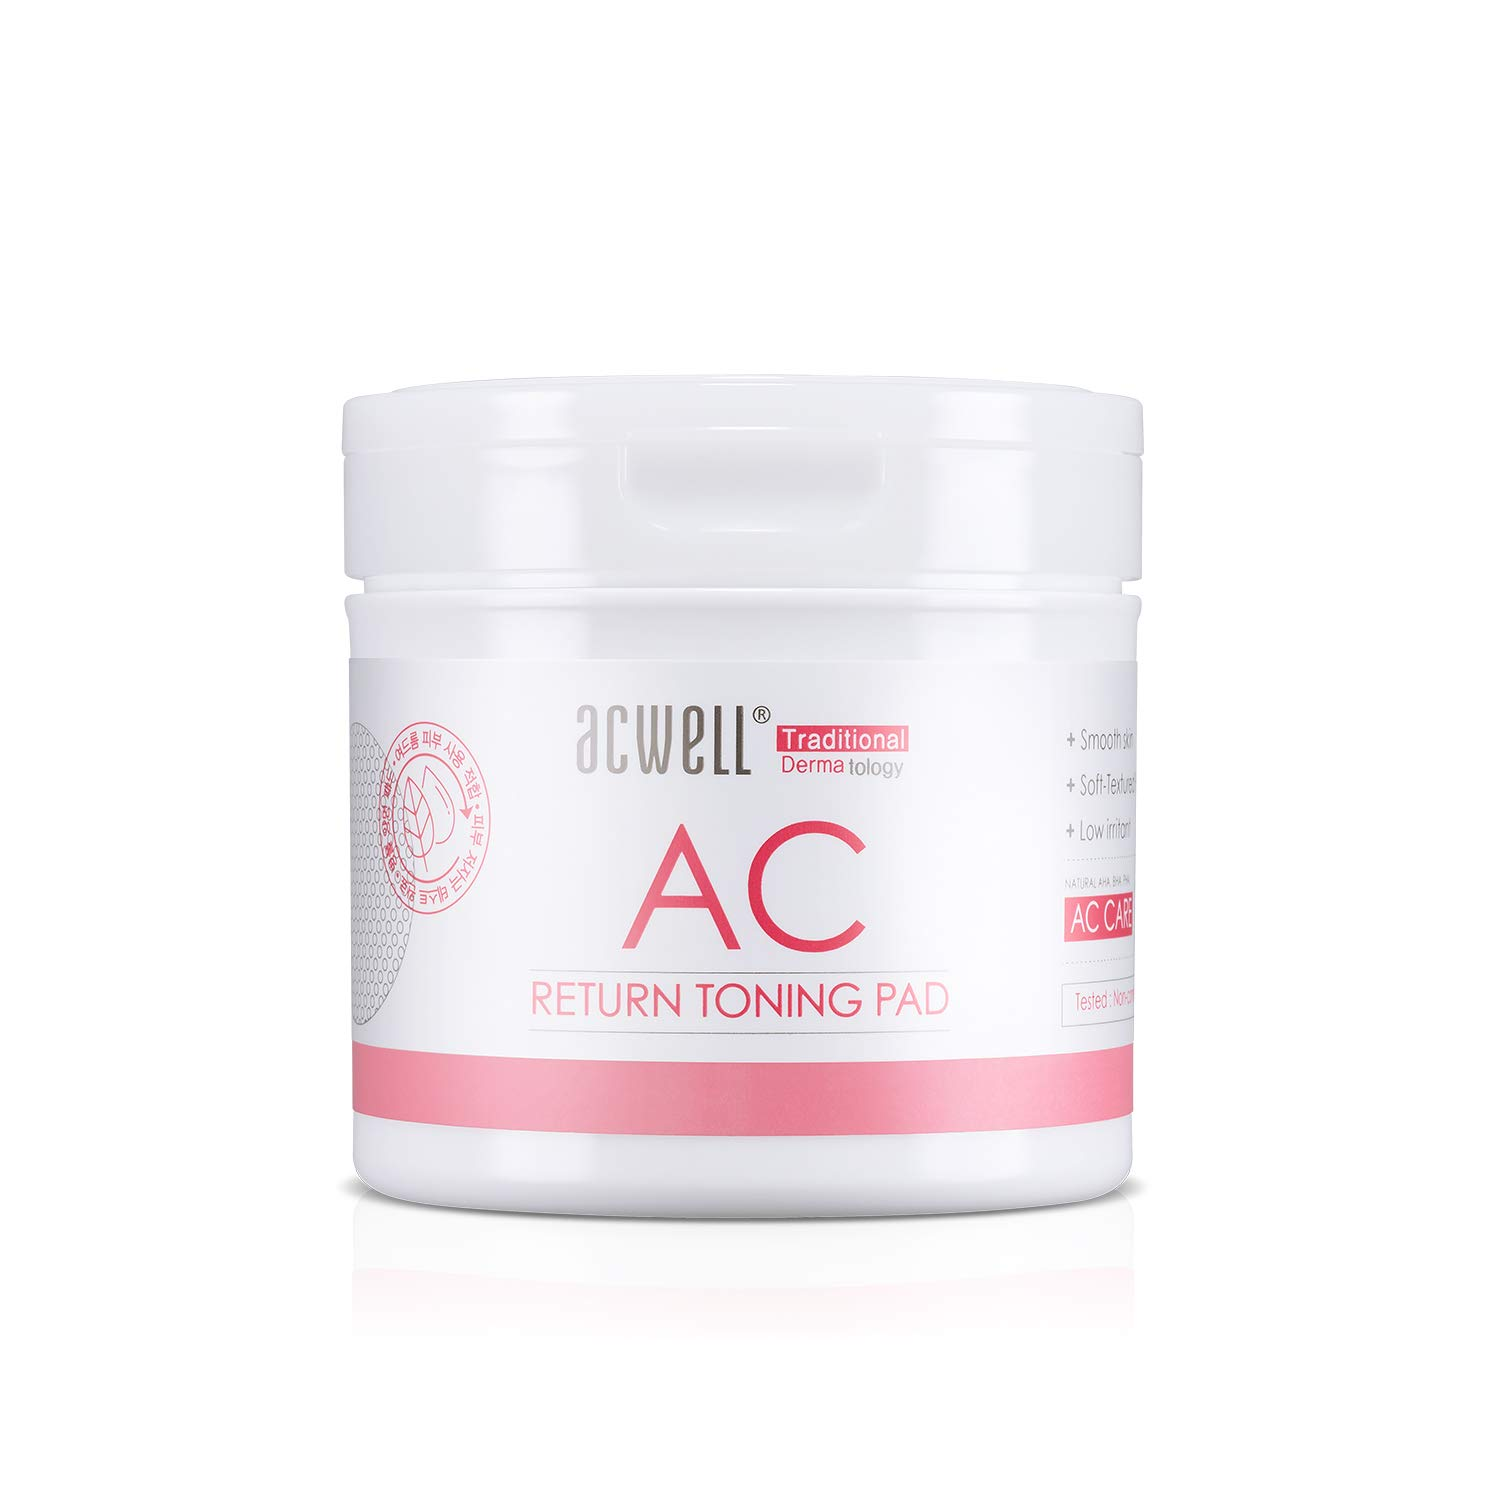 ACWELL AC Returning Toning Pad (50ea) Skin Tone Care Skin Texture Improvement Centella Asiatica Extract